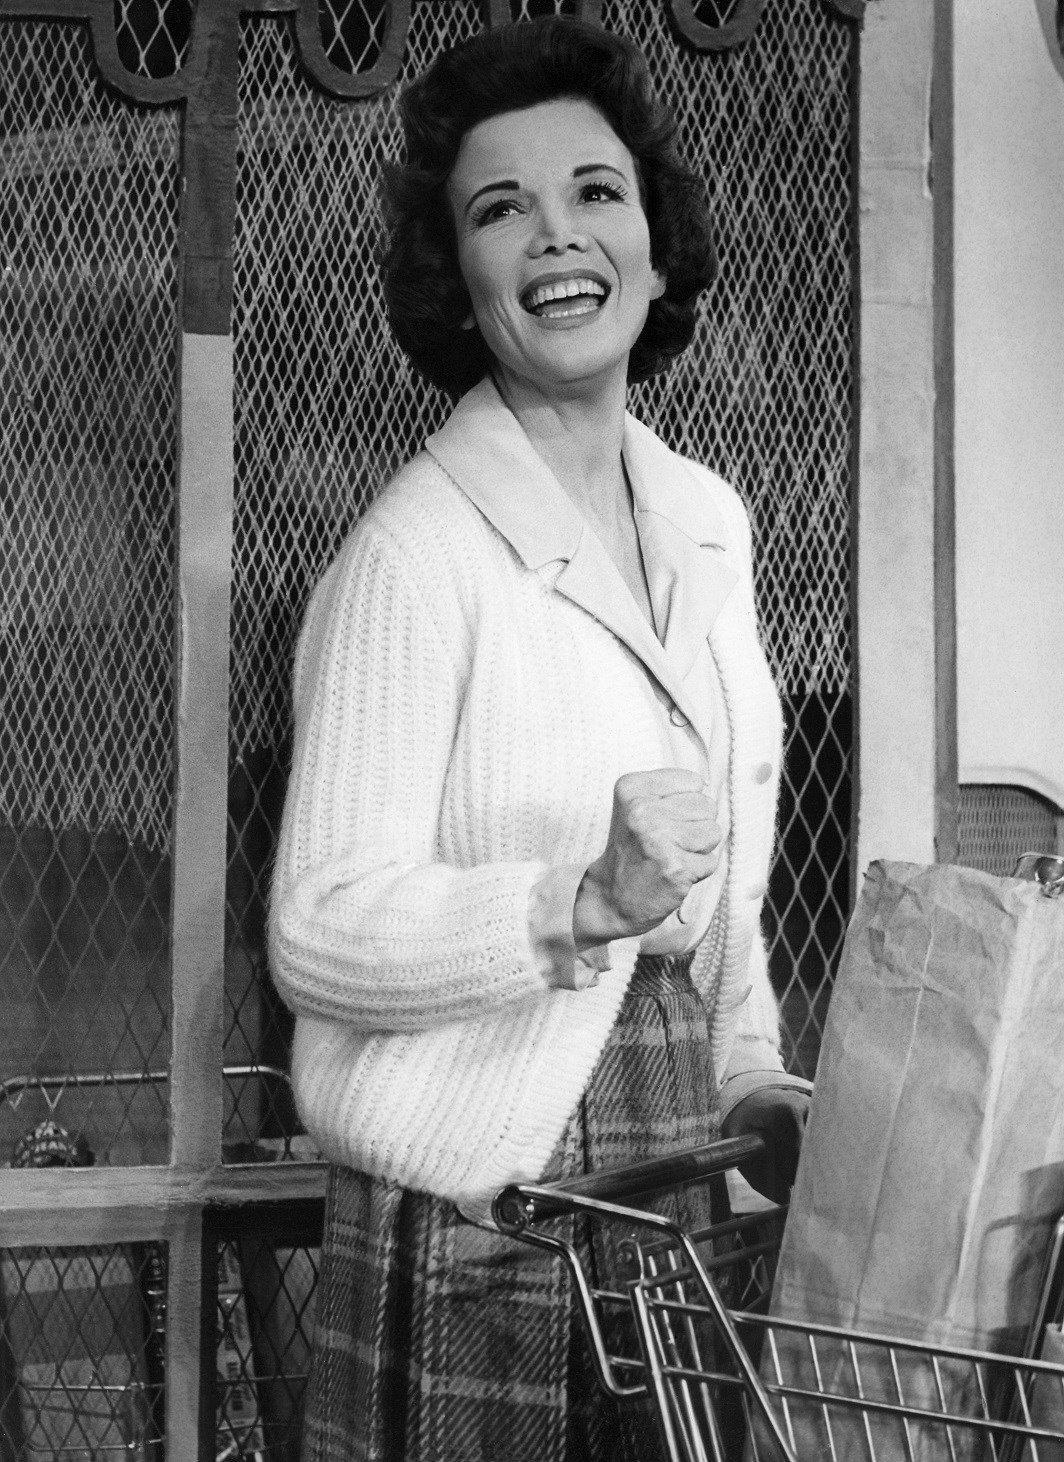 """Nanette Fabray, seen here performing in the Irving Berlin musical """"Mr. President"""" in 1962, had a long career as an actress, singer and dancer. She died on Thursday, Feb. 22, at the age of 97. (Source: Associated Press)"""